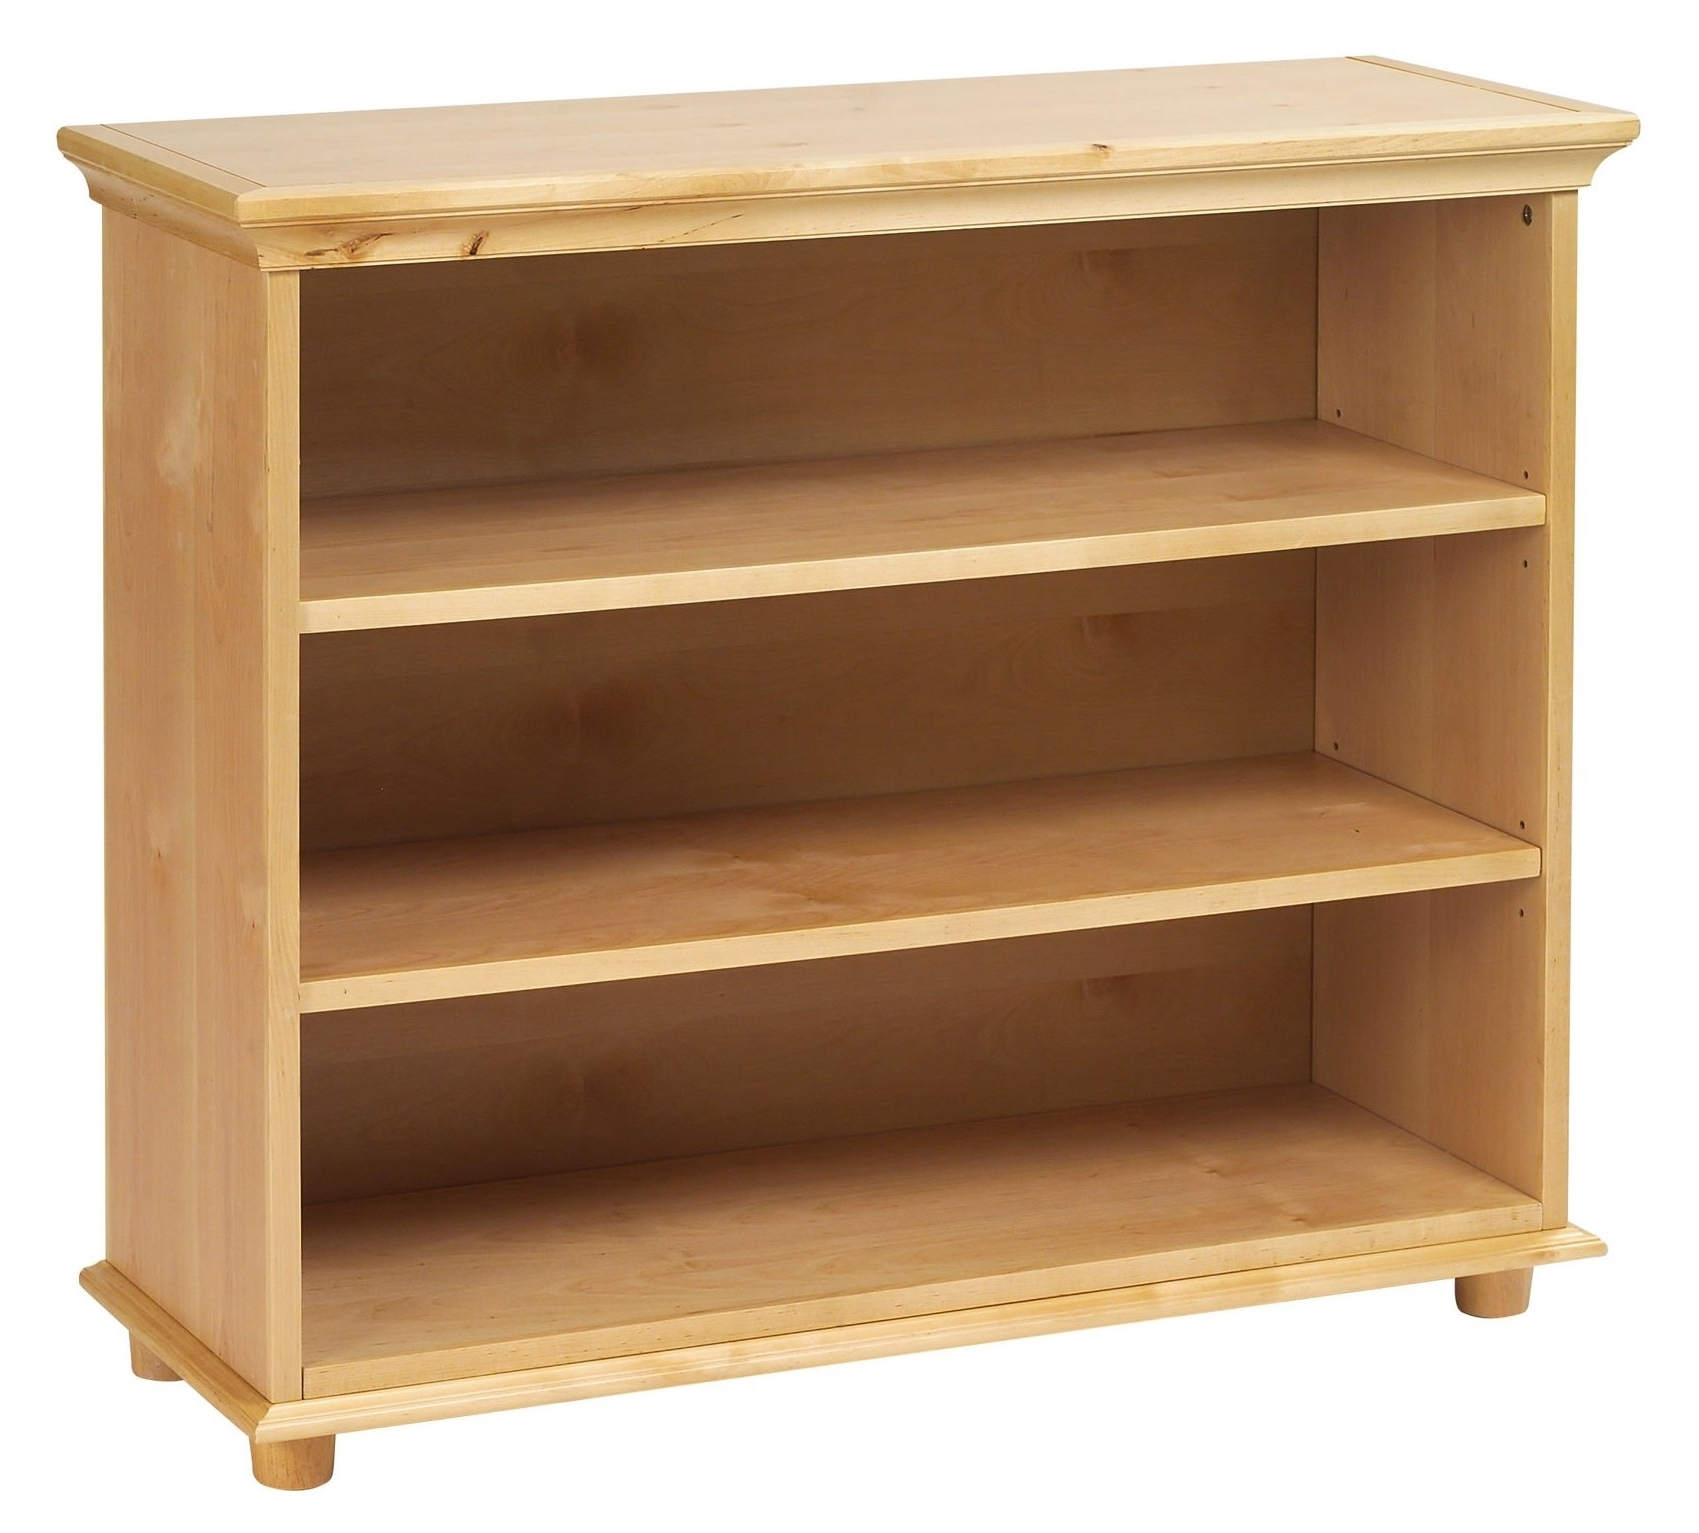 Yellow Billy Bookcase Ikea And Shelf Spacing Also Solid Wood With Most Recent 3 Shelf Bookcases (View 11 of 15)